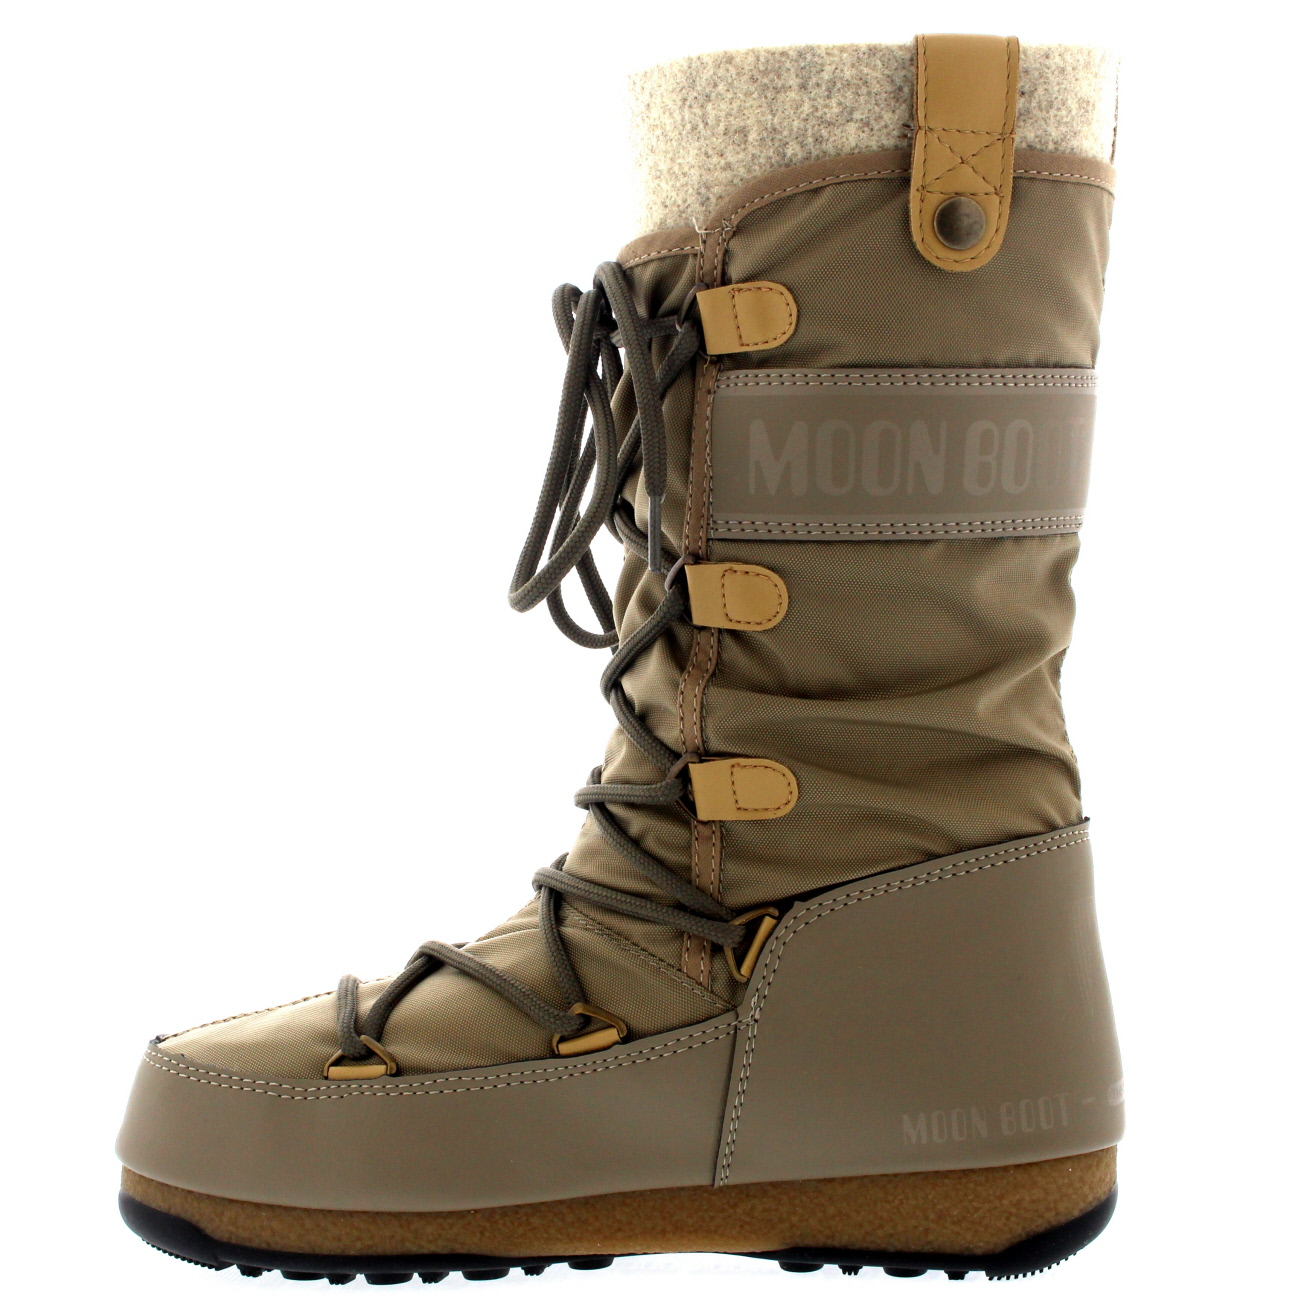 Ladies Tecnica Original Moon Boot Monaco Felt Winter Mid